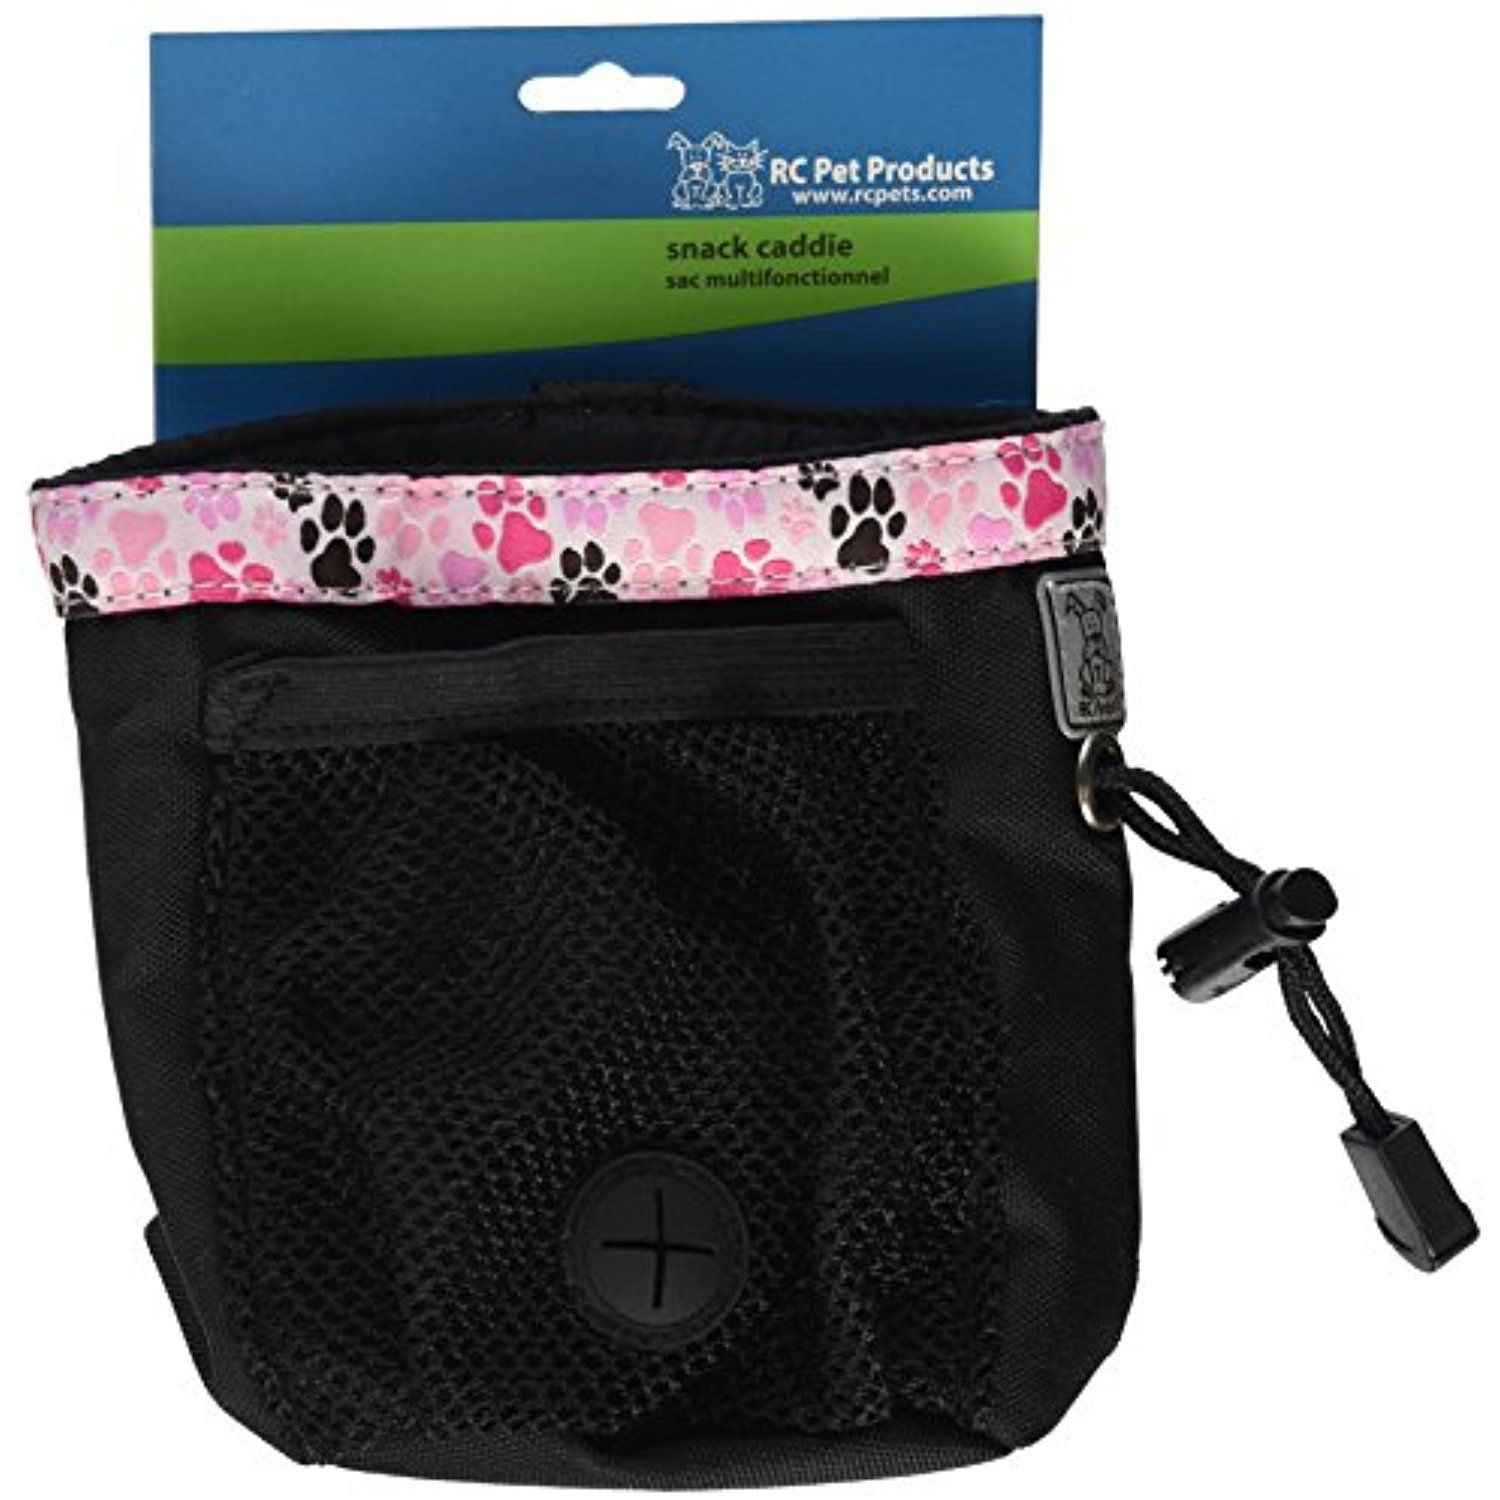 RC Pet Products Dog Snack Caddie, Black with Pitter Patter